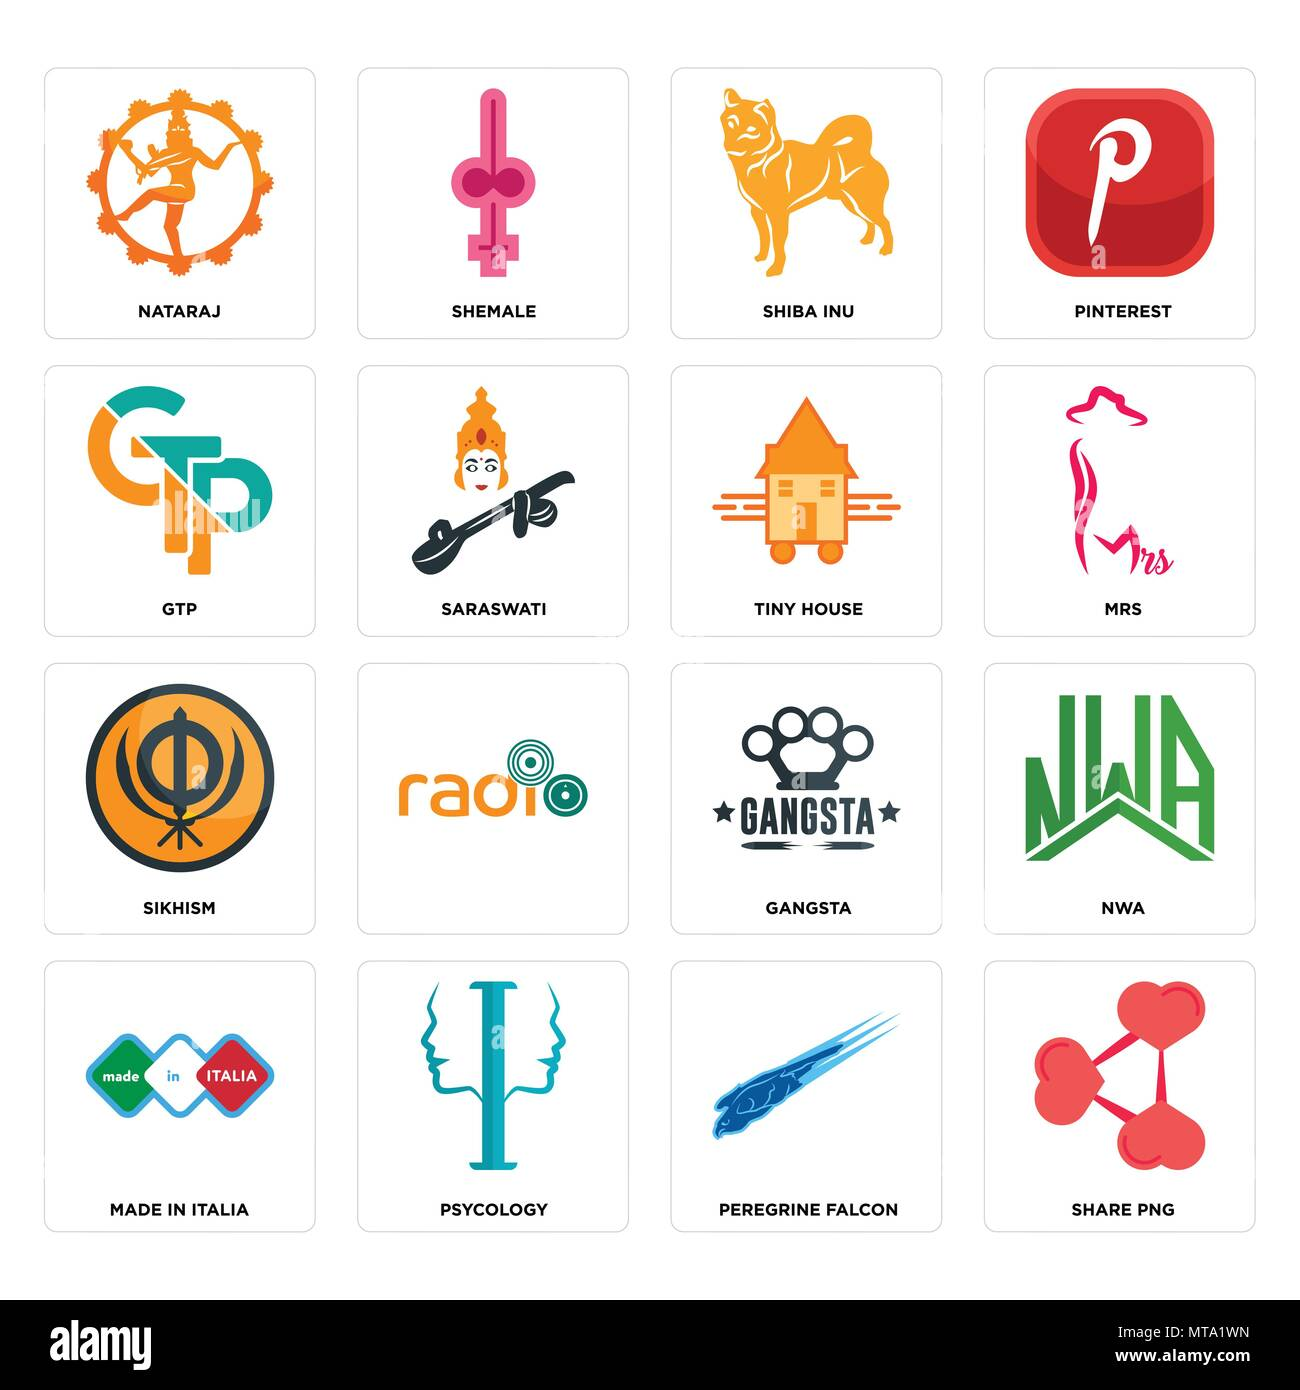 Set Of 16 simple editable icons such as share png, peregrine falcon, psycology, made in italia, nwa, nataraj, gtp, sikhism, tiny house can be used for - Stock Image